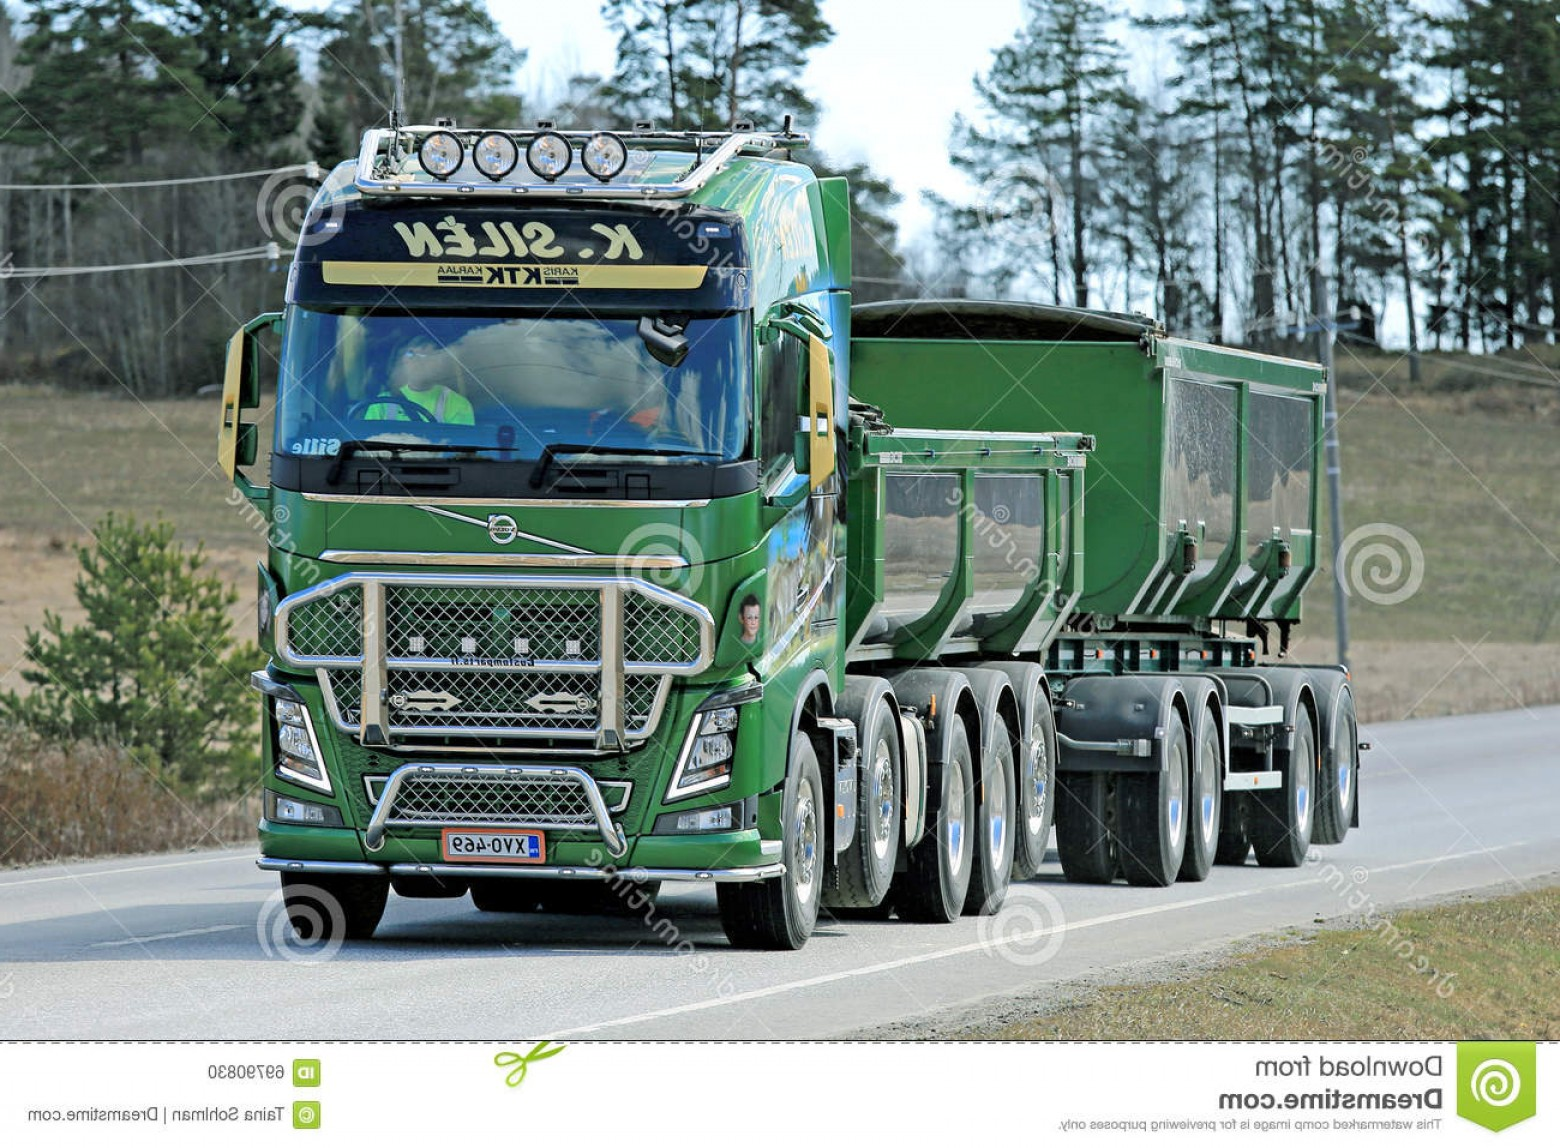 Volvo FH Vector: Editorial Image Green Volvo Fh Truck Construction Karjaa Finland April K Silen Moves Along Road Customized Power Show Image